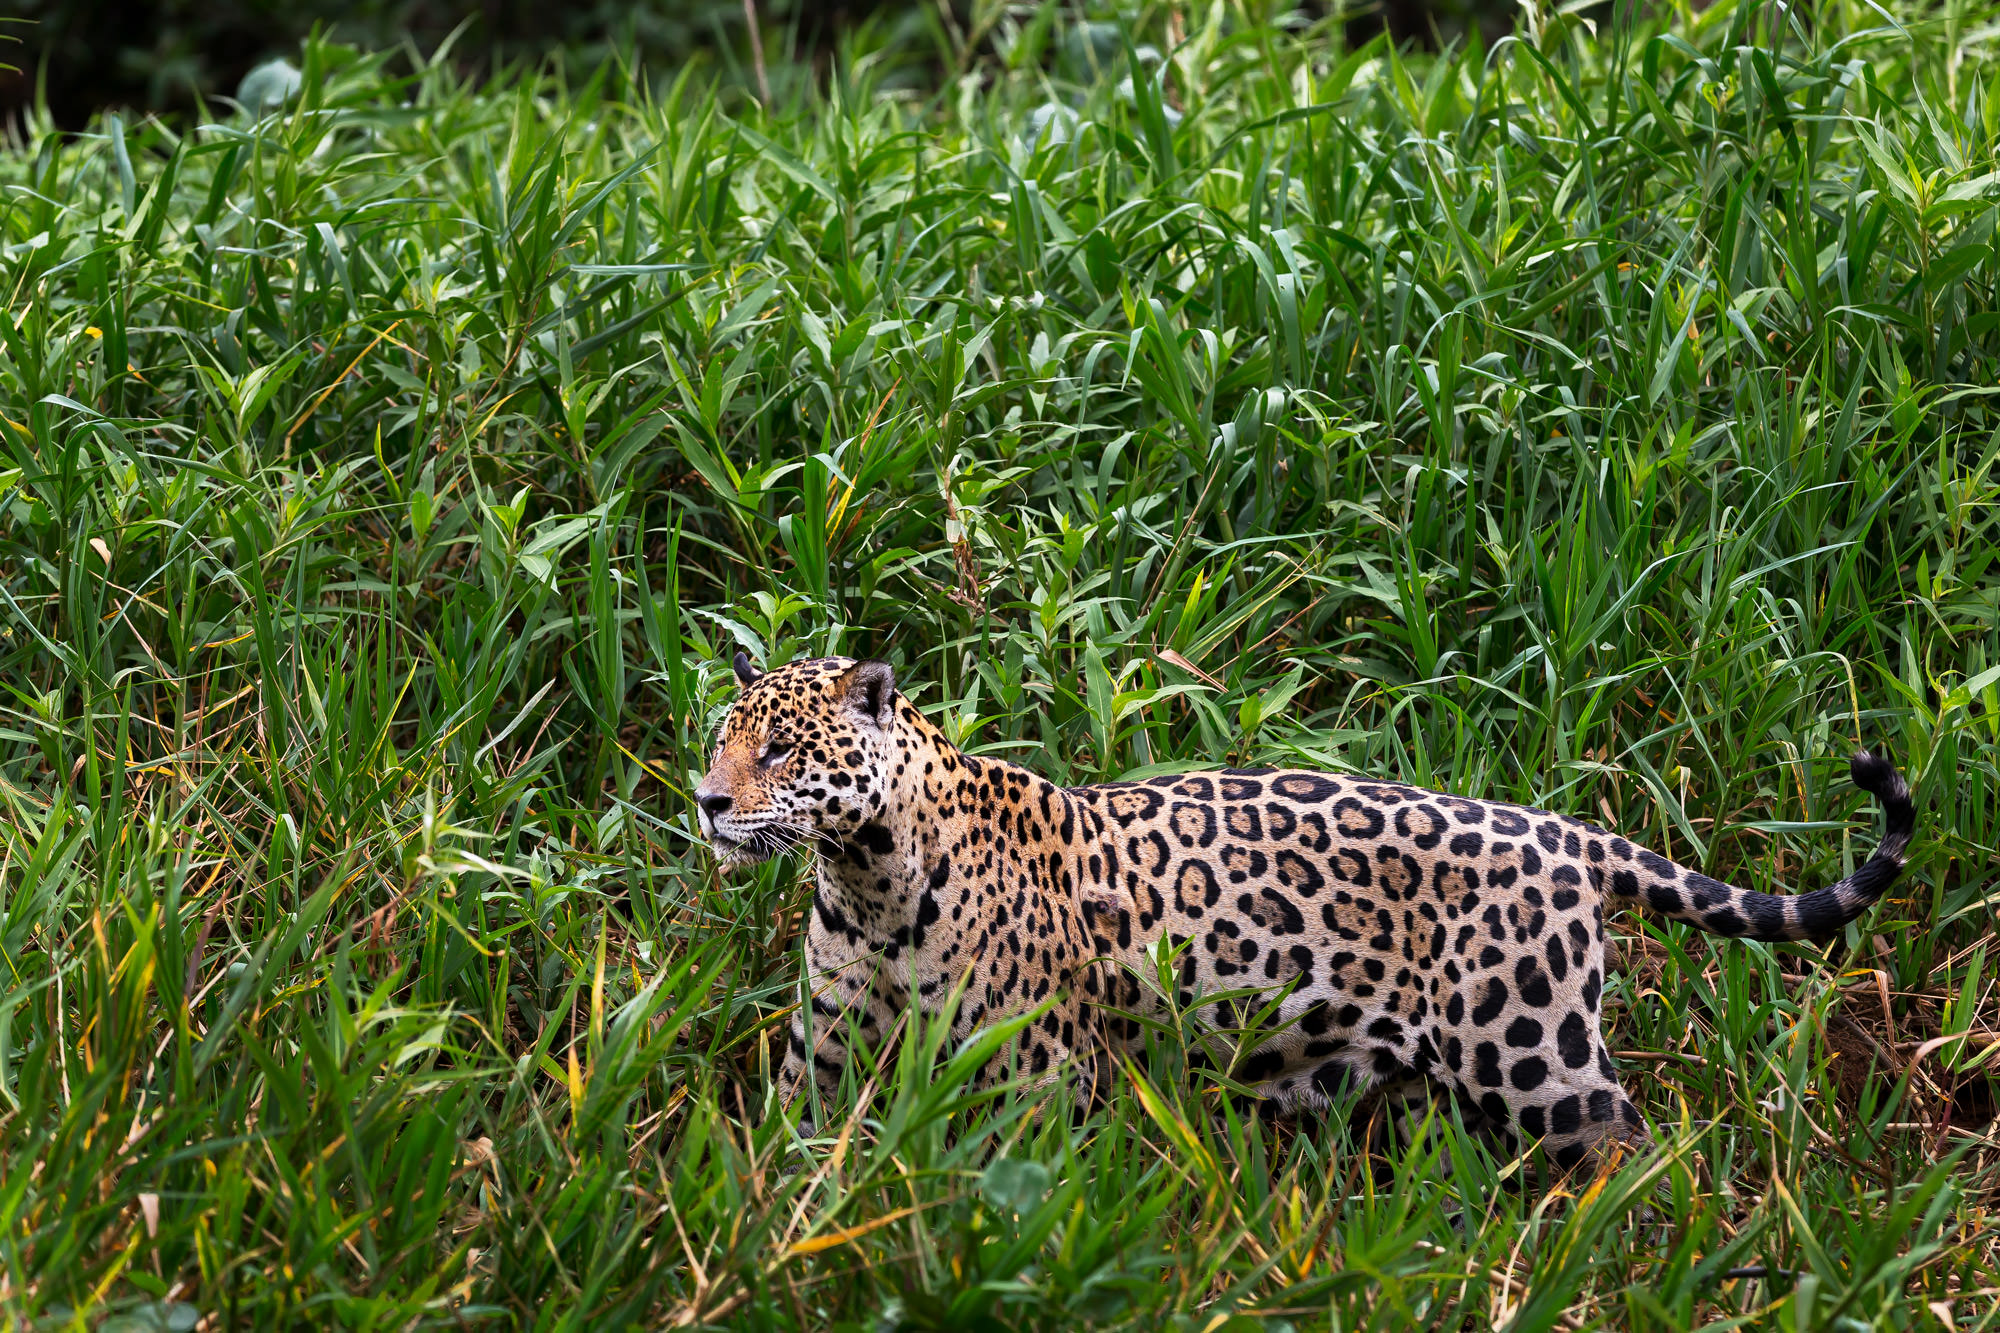 Jaguar, Brazil, Pantanal, limited edition, photograph, fine art, wildlife, photo